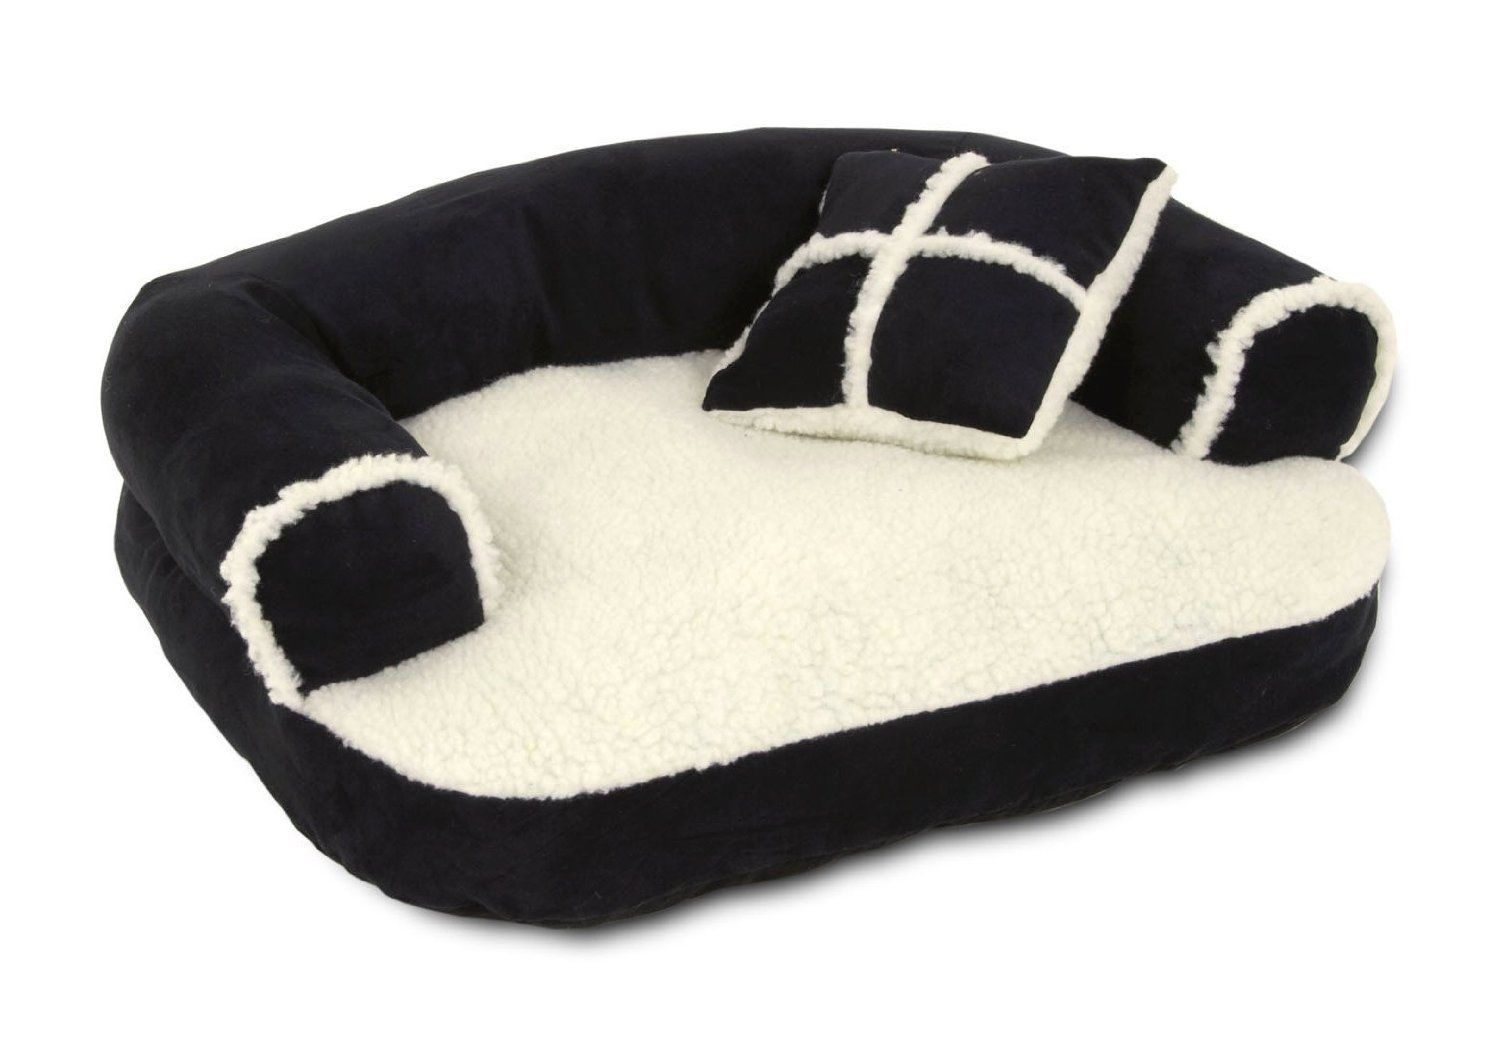 sofa dog bed pet couch cat soft puppy cushion warm animal furniture foam new